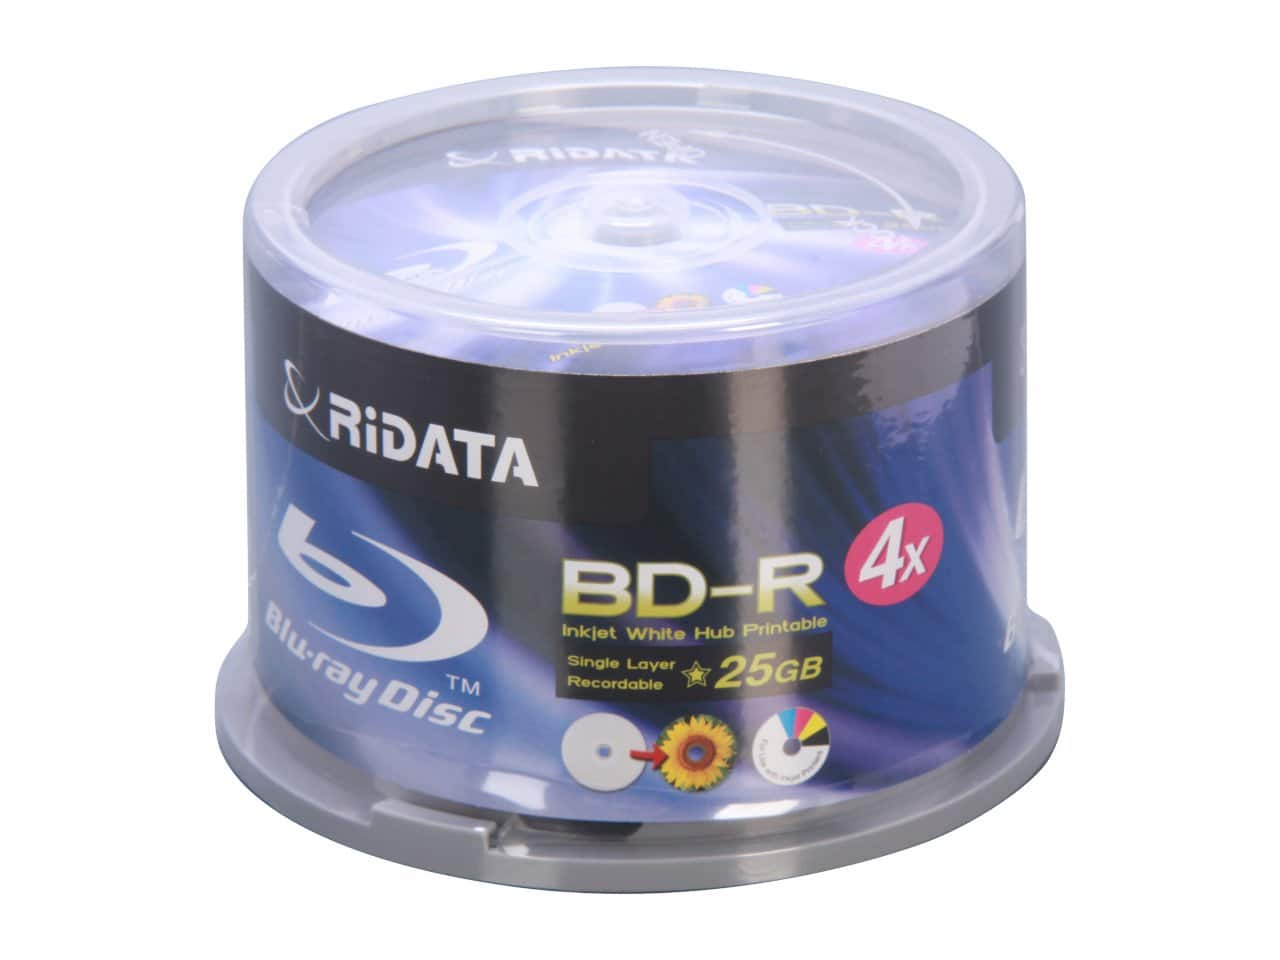 Optical Media: 50-Pack RiDATA 25 GB 4X Inkjet Printable BD-R Media Spindle (BDR-254-RDIWN-CB50) for $14.99 AC & More + Free Shipping@ Newegg.com